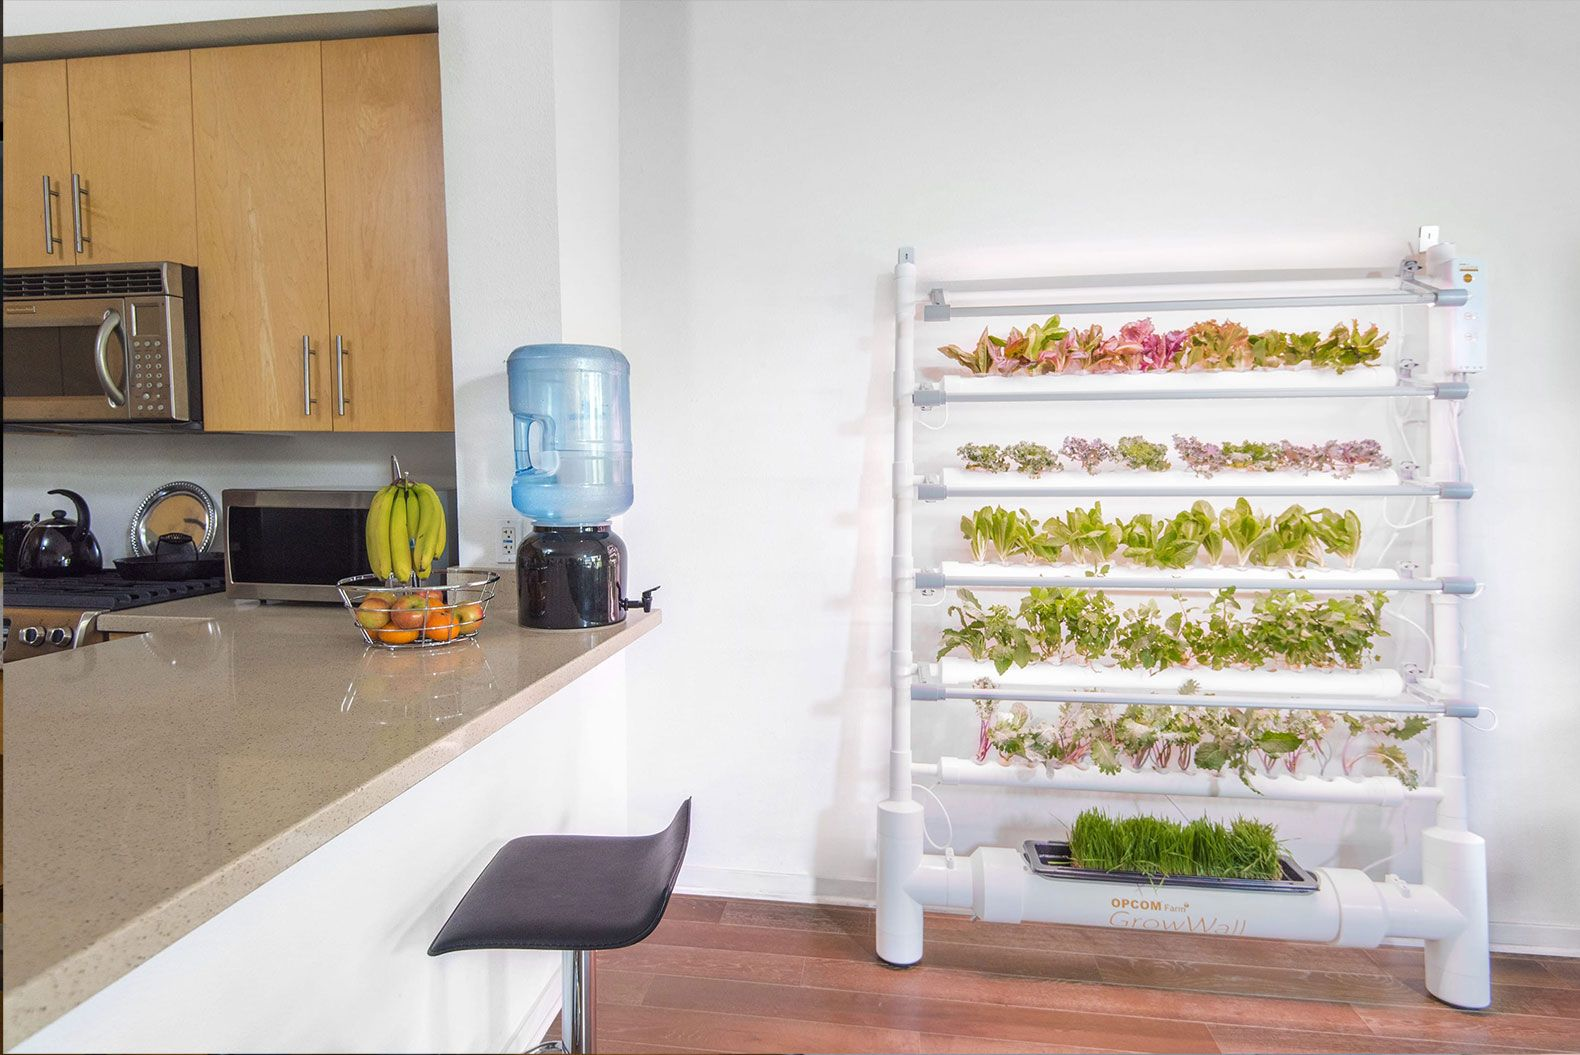 Harvest fresh veggies all year round with the energy efficient growbox grow box opcom hydroponic garden indoor garden indoor gardening kit hydroponic growing opcom farm indoor farm tabletop far indoor growing workwithnaturefo